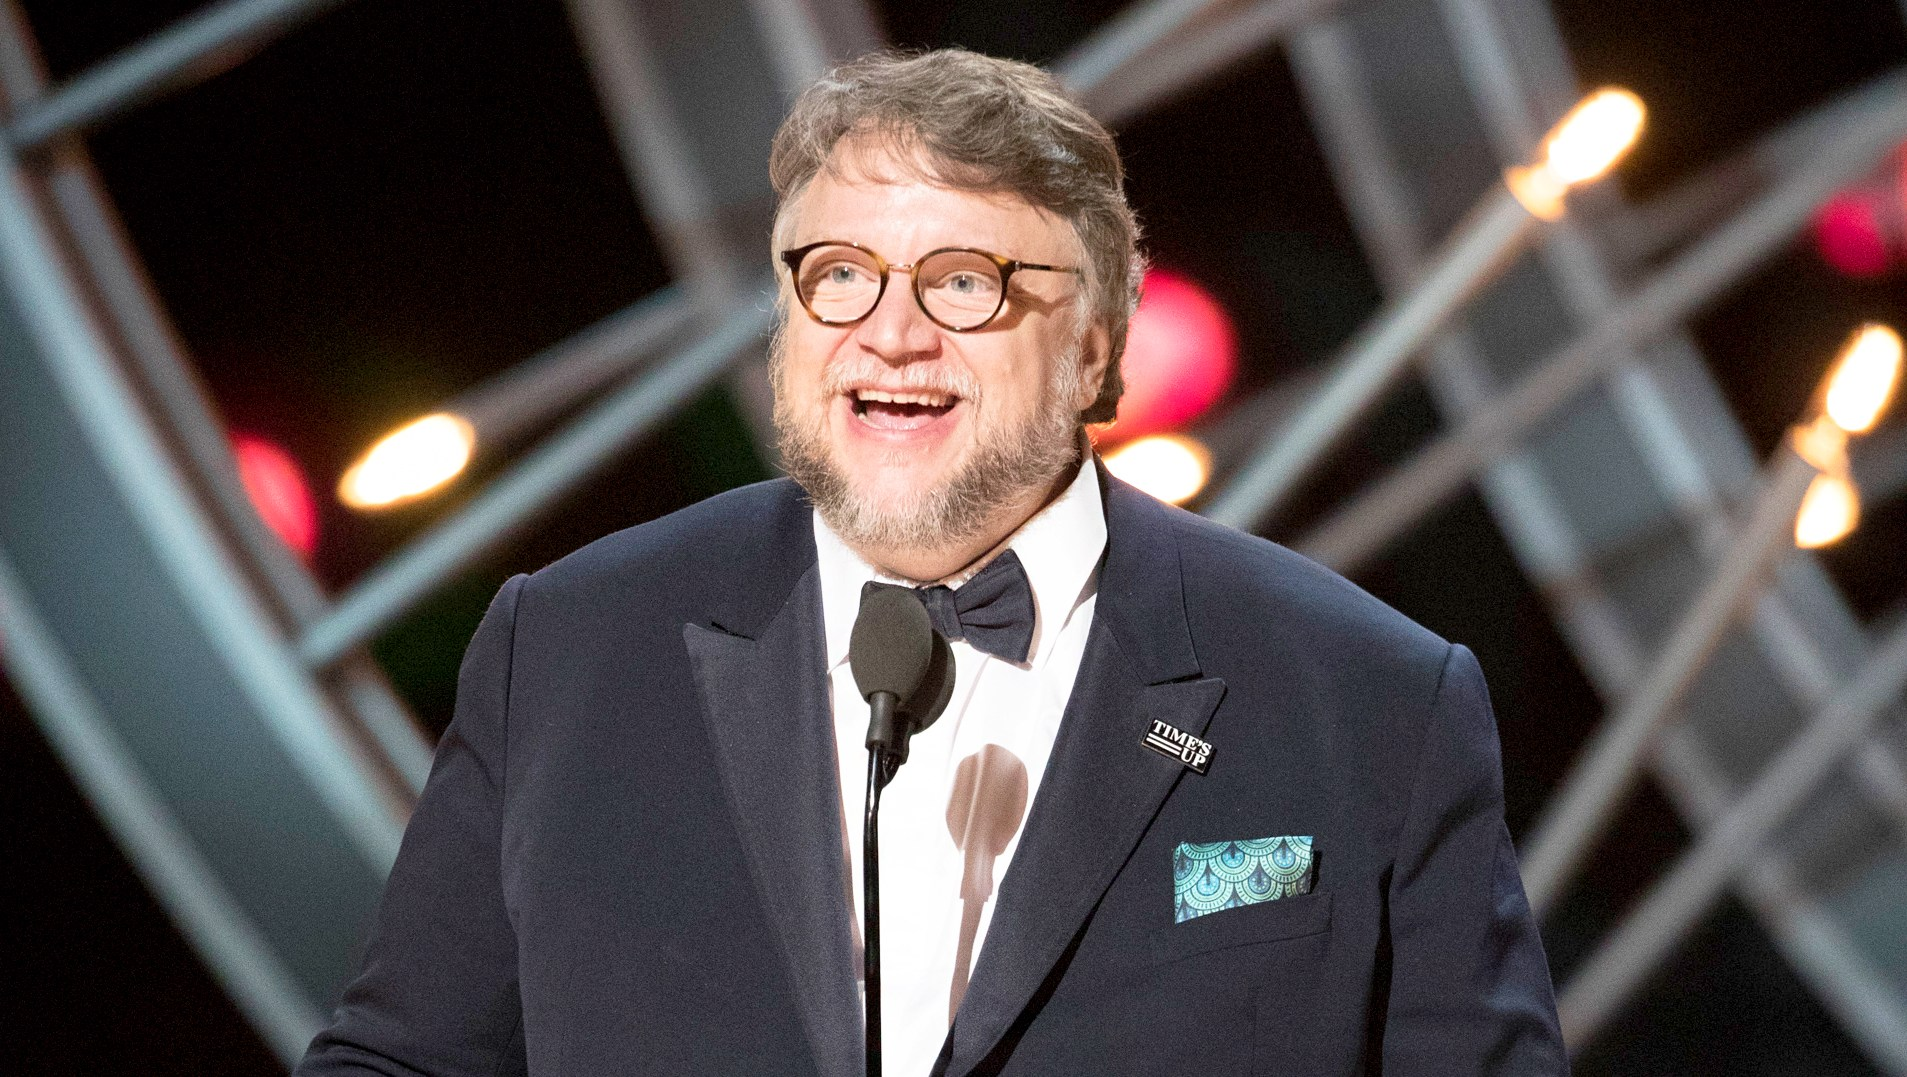 """Mexican director Guillermo del Toro accepts the Oscar for Best Film for """"The Shape of Water"""" during the 90th Annual Academy Awards show on March 4, 2018 in Hollywood, California."""